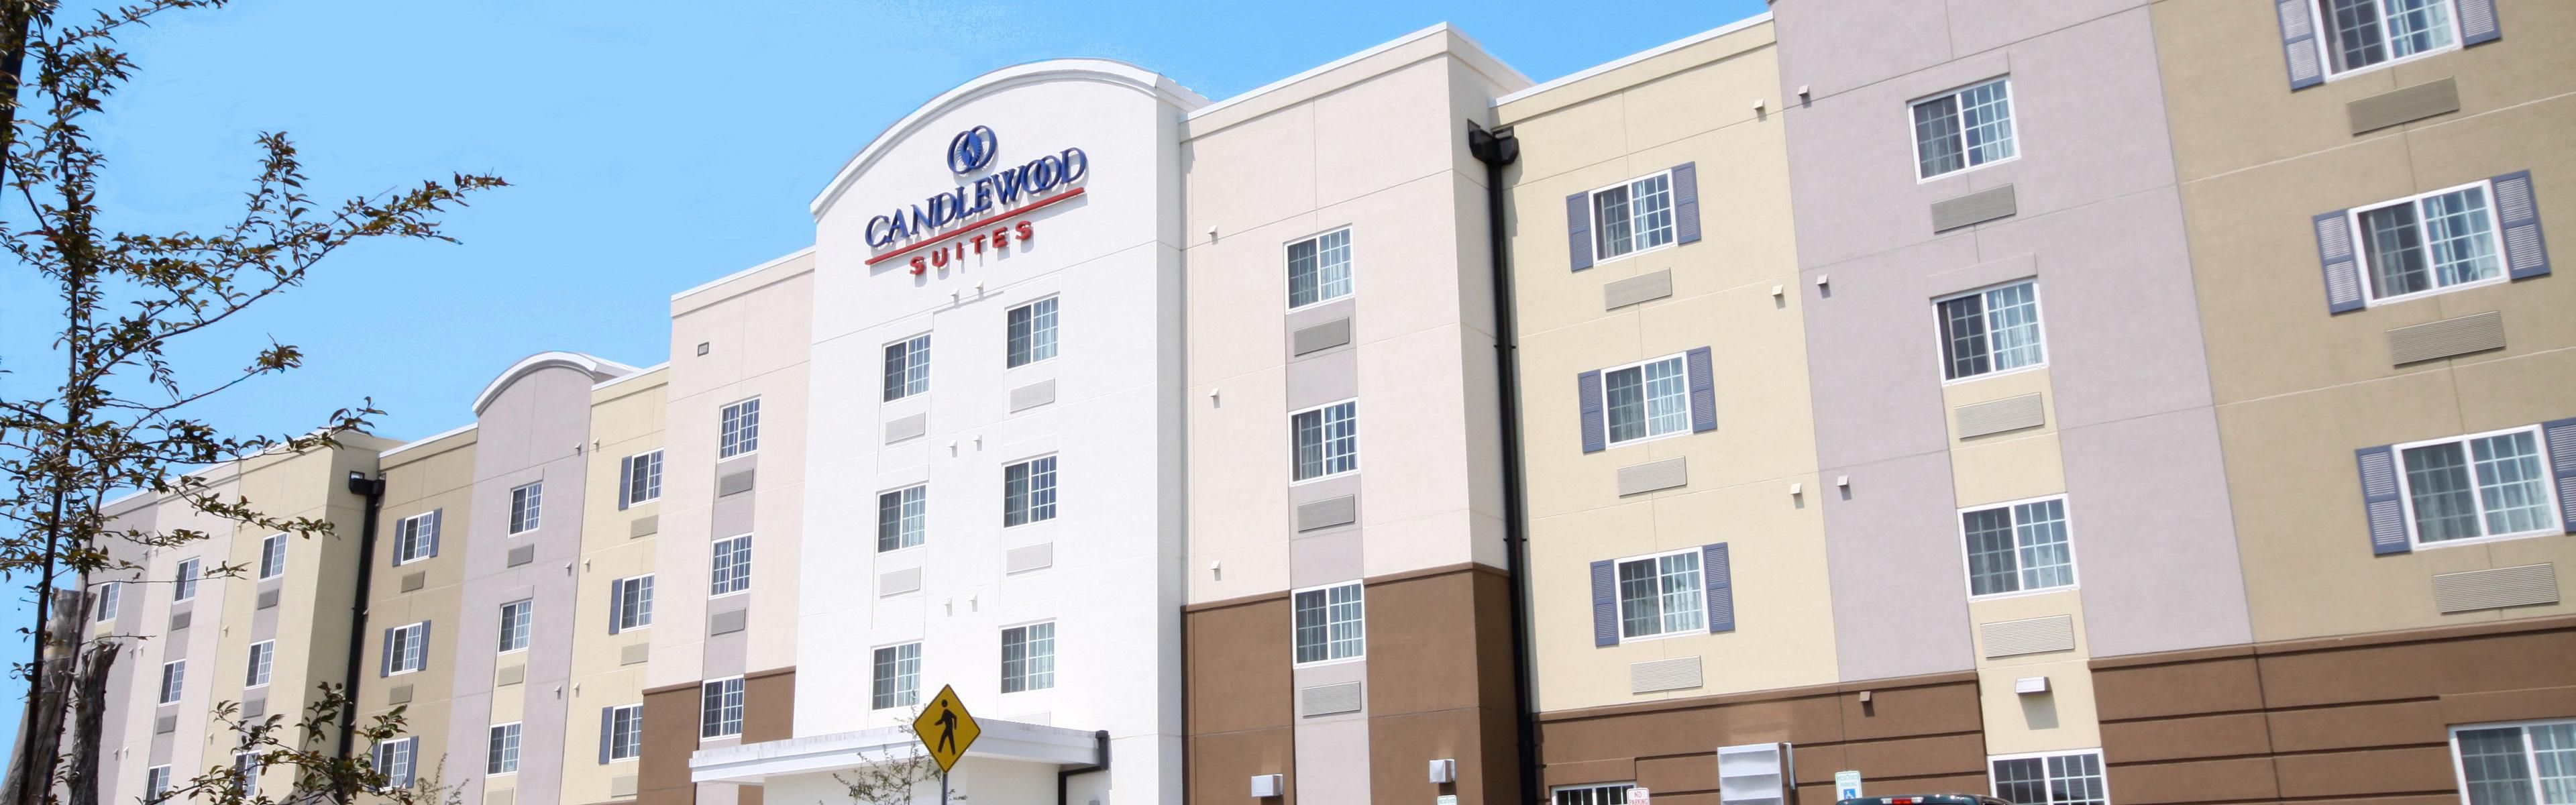 Candlewood Suites Watertown-Fort Drum image 0